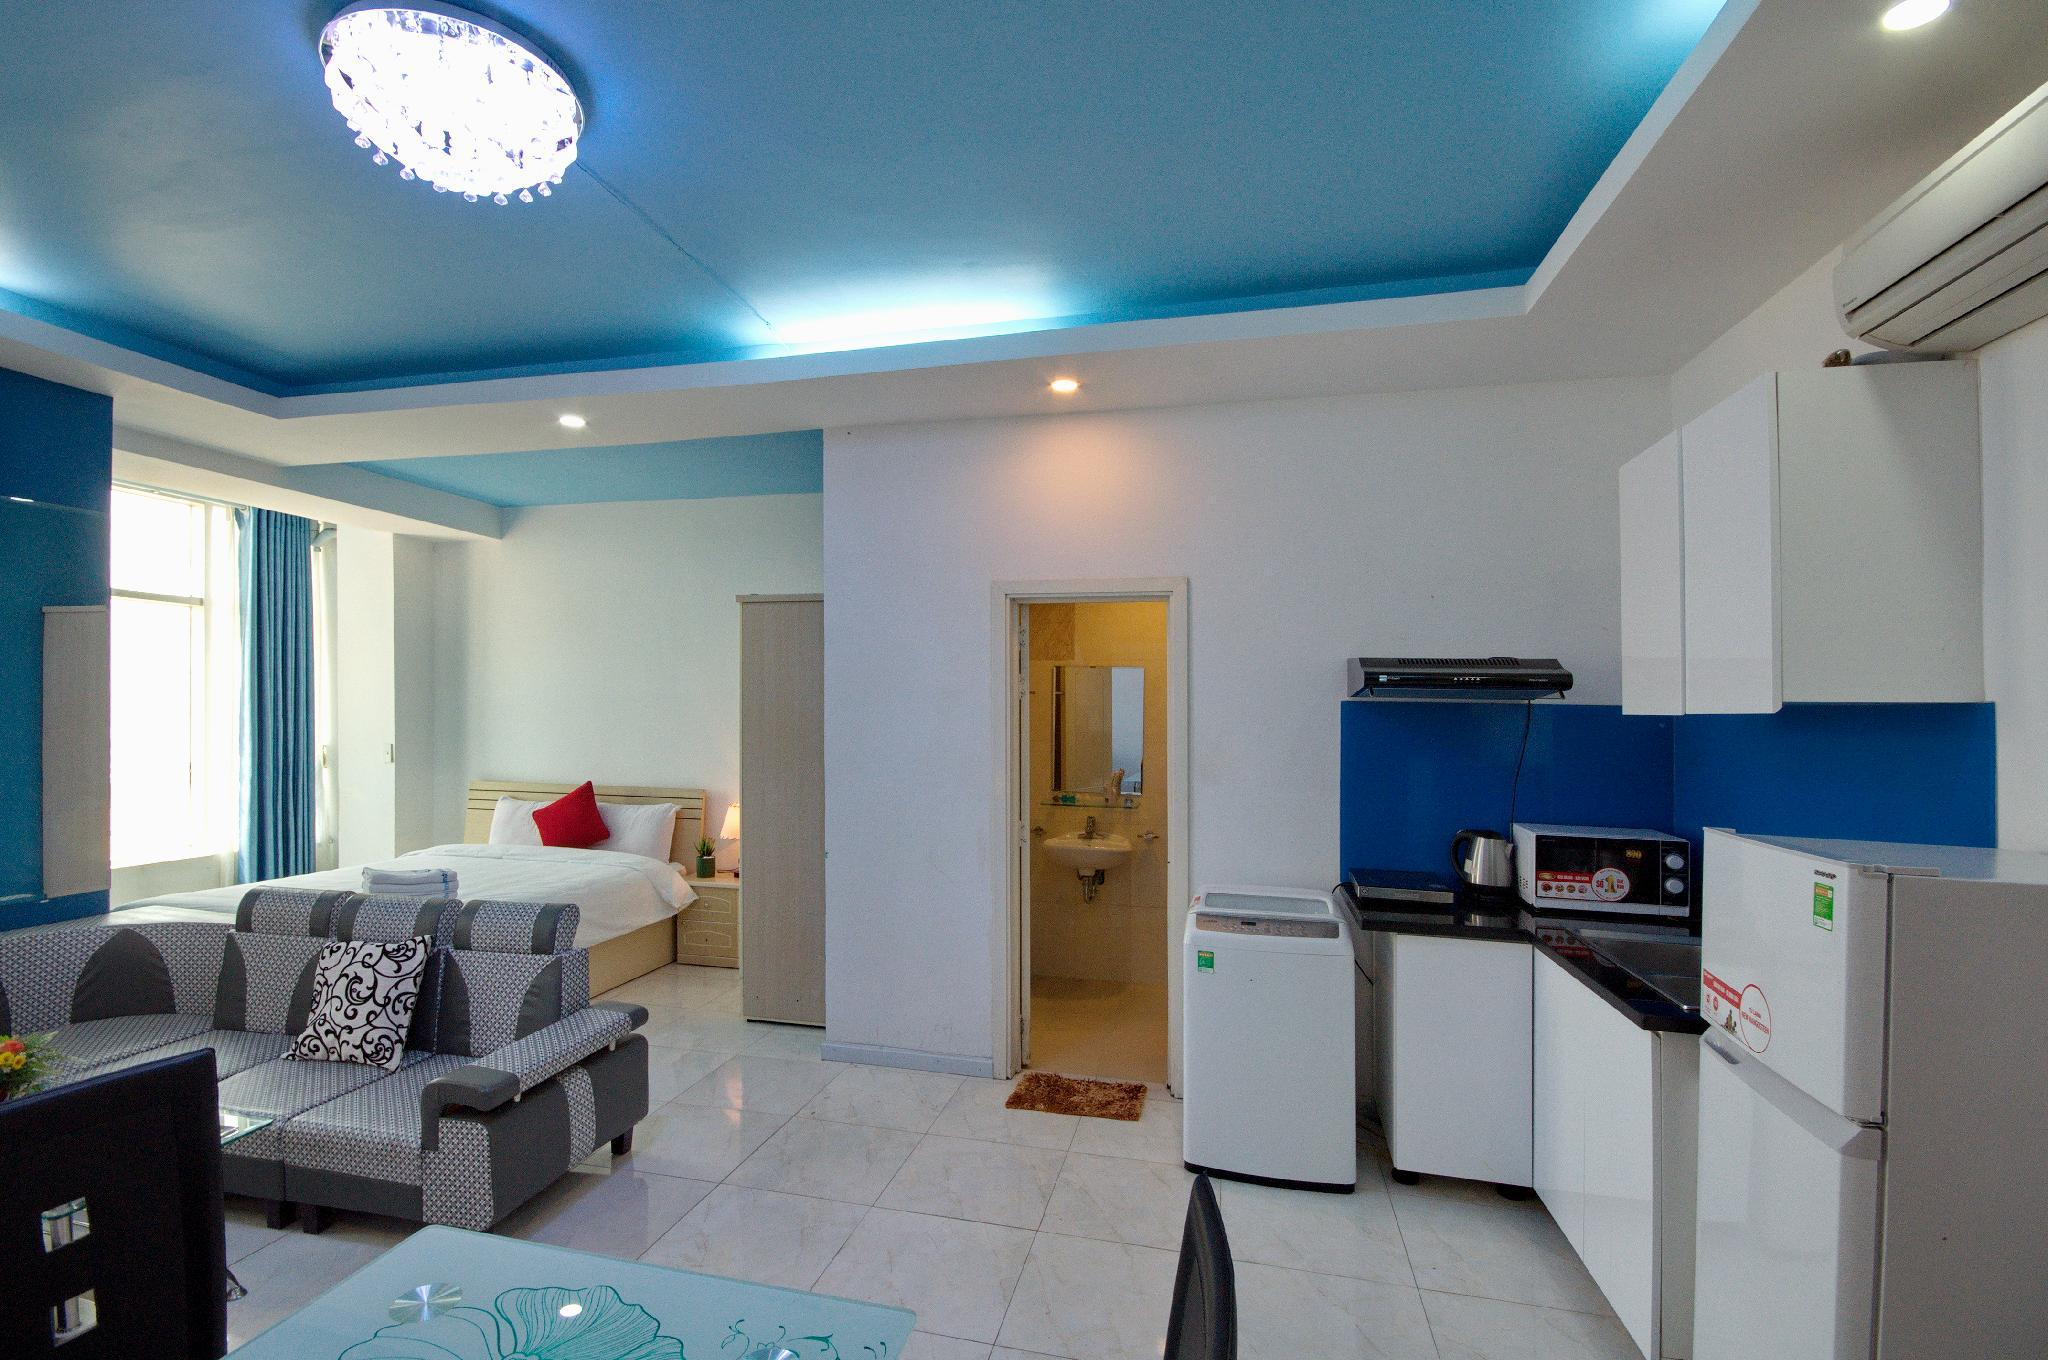 Cheap Apartment At Great Location  1 Bedroom  3606